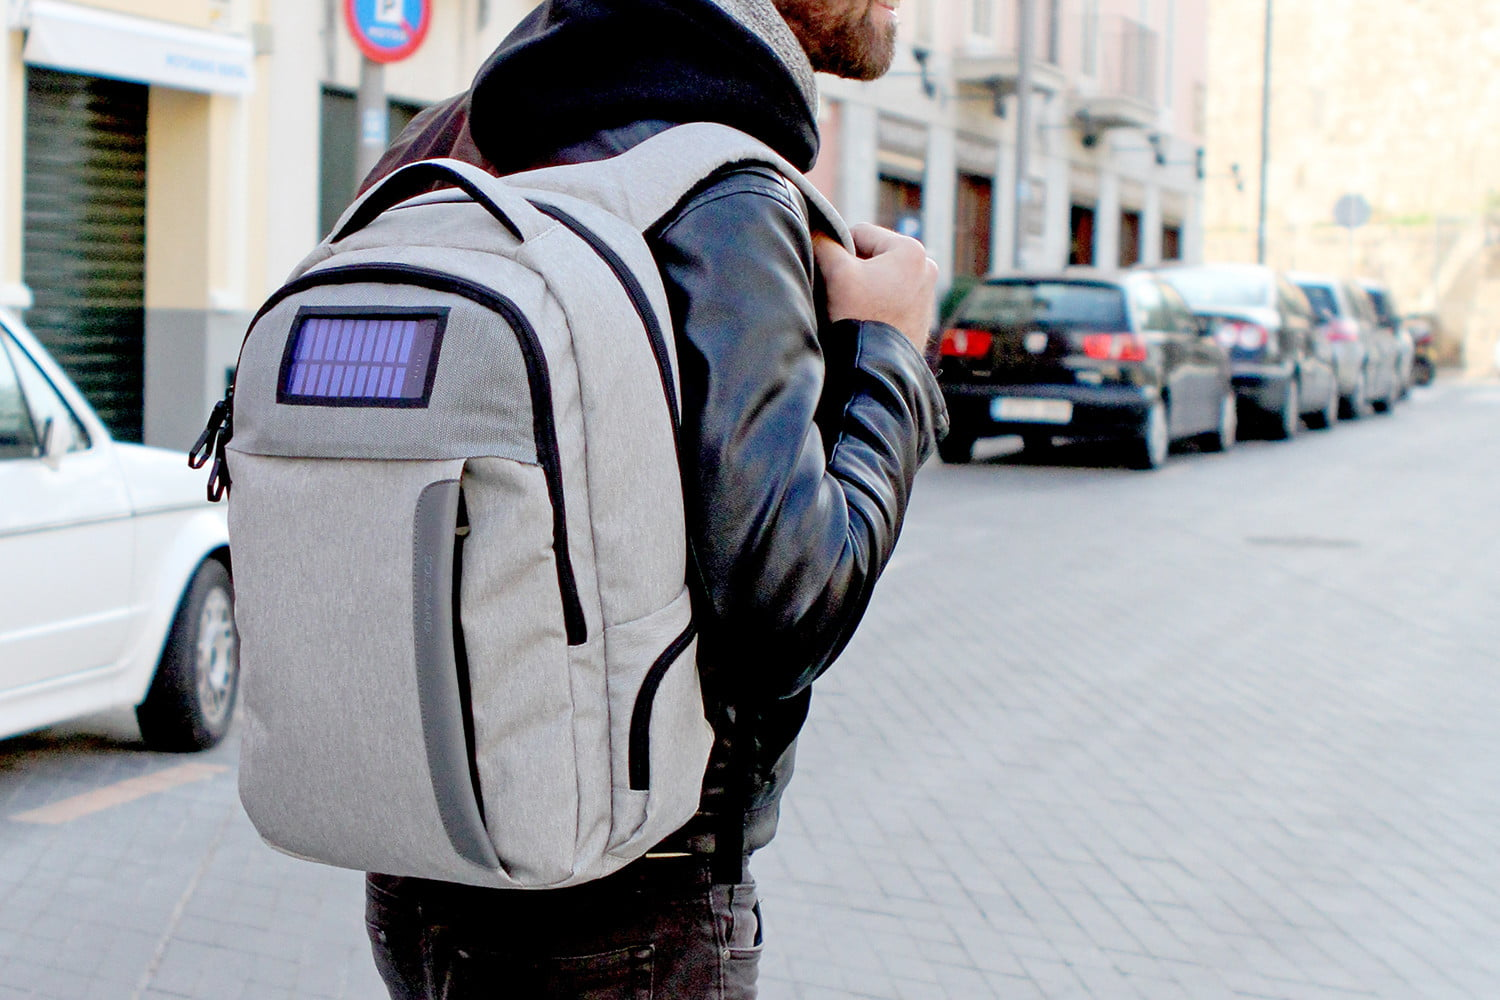 awesome tech you cant buy yet triton gills nervana headphones lifepack  solar powered anti theft backpack